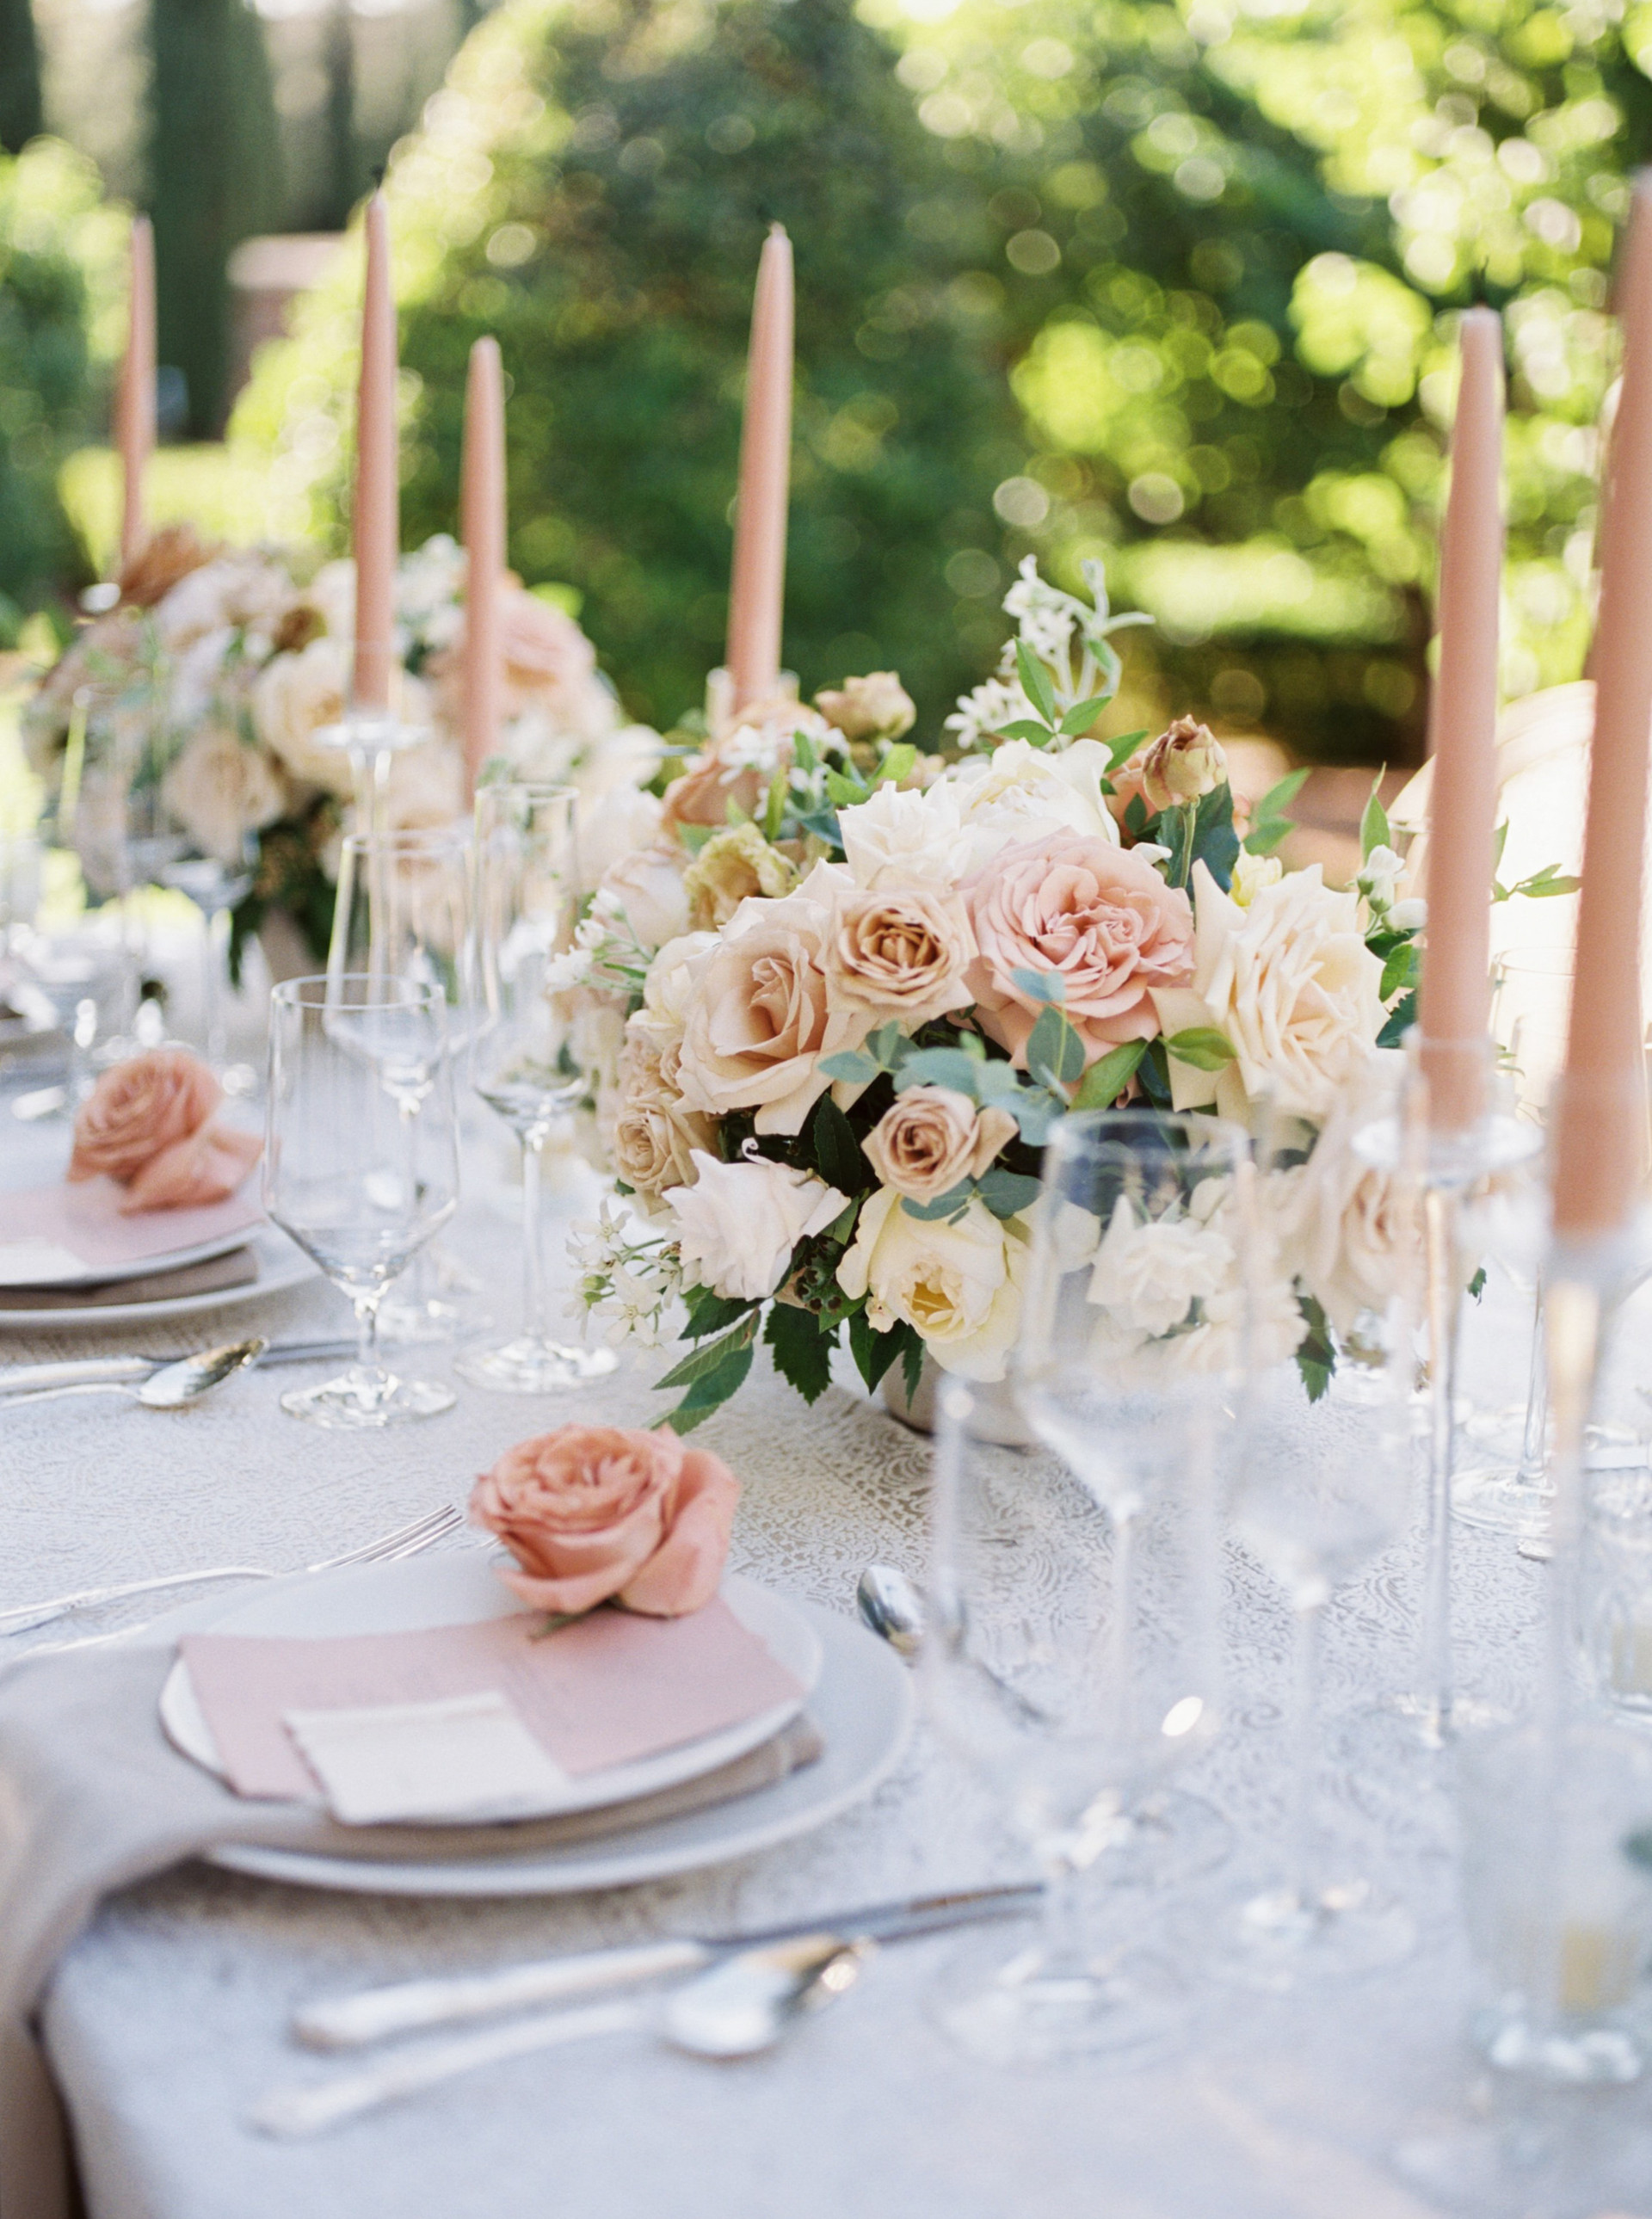 Centerpieces in shades of taupe and dusty rose. Photo: Lianna Marie